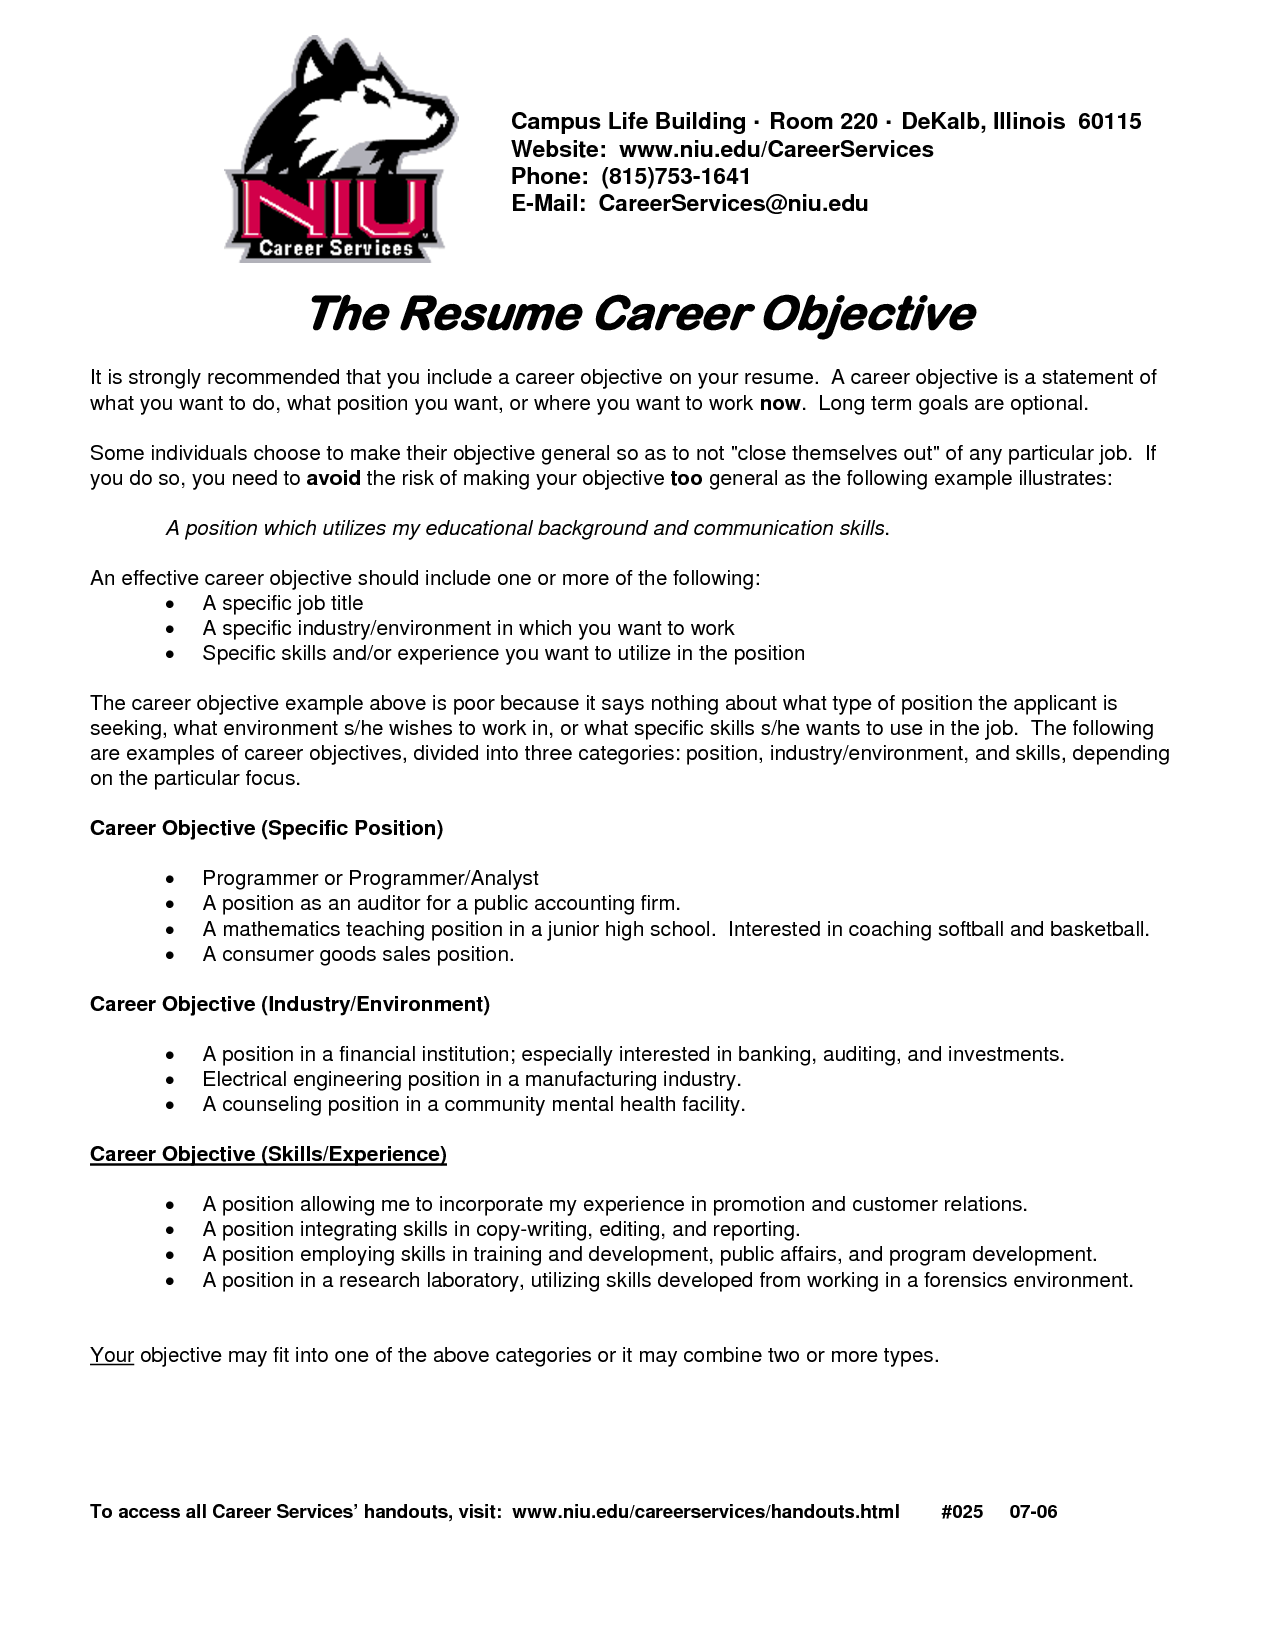 career objective resume examples free download - Job Objective For Resume